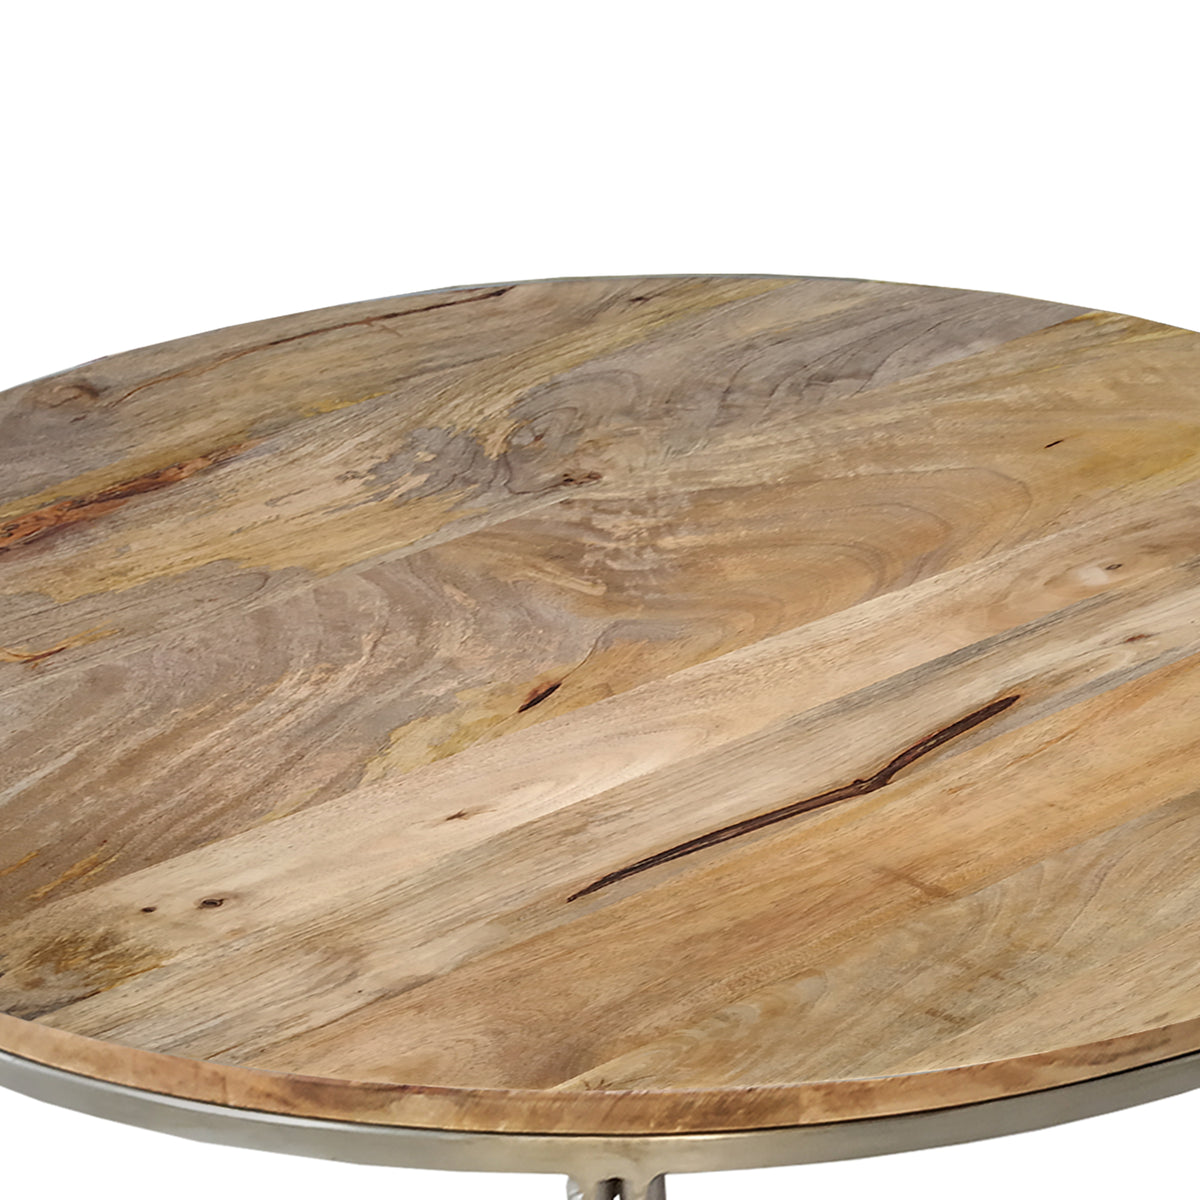 The Urban Port Round Wooden Top Coffee Table With Lattice Metal Base Brown And Silver Upt 197309 Benzara Com